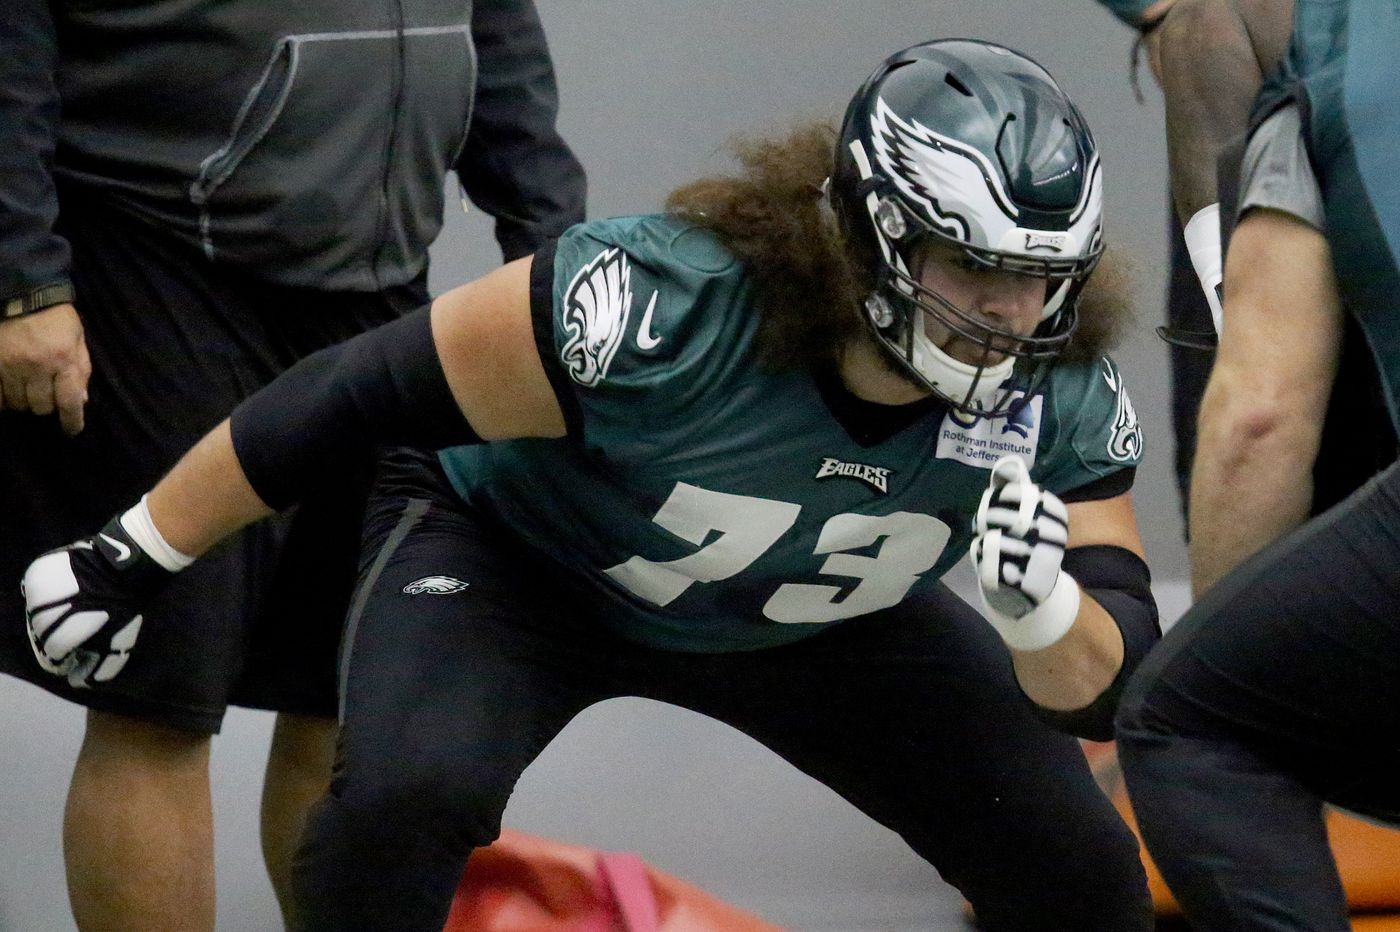 Eagles' guard Isaac Seumalo glad to be back in the swing of things for playoff run